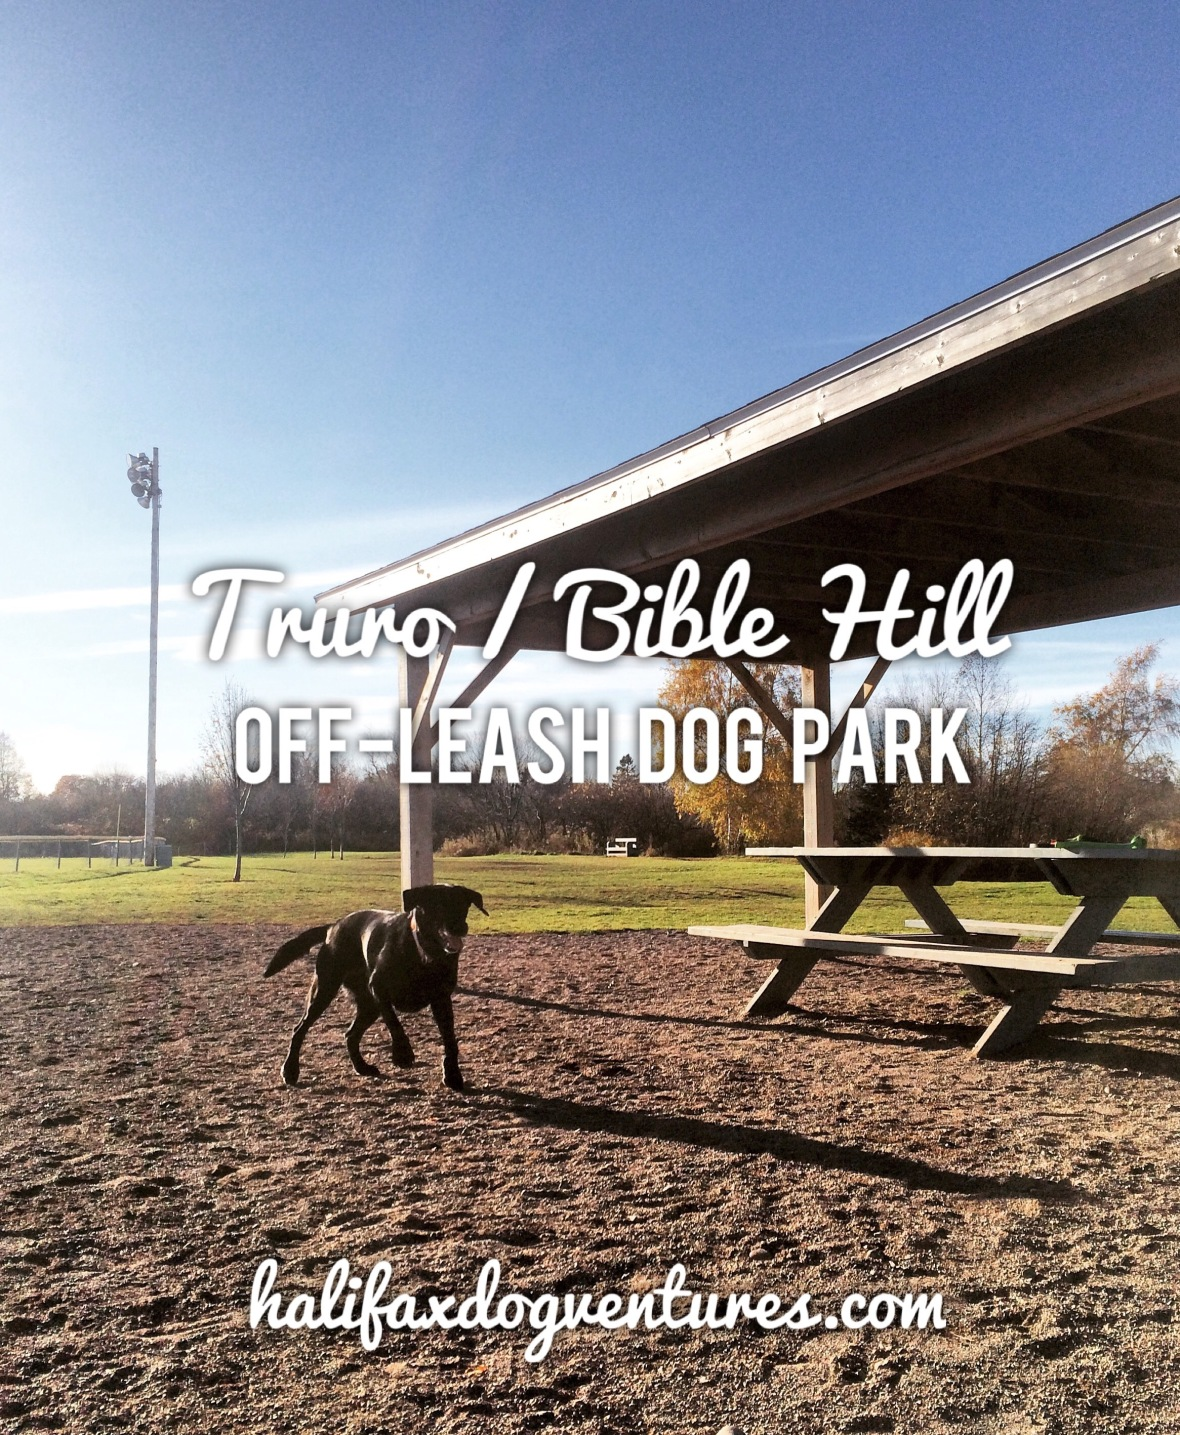 Truro / Bible Hill Off-Leash Dog Park in Truro, Nova Scotia